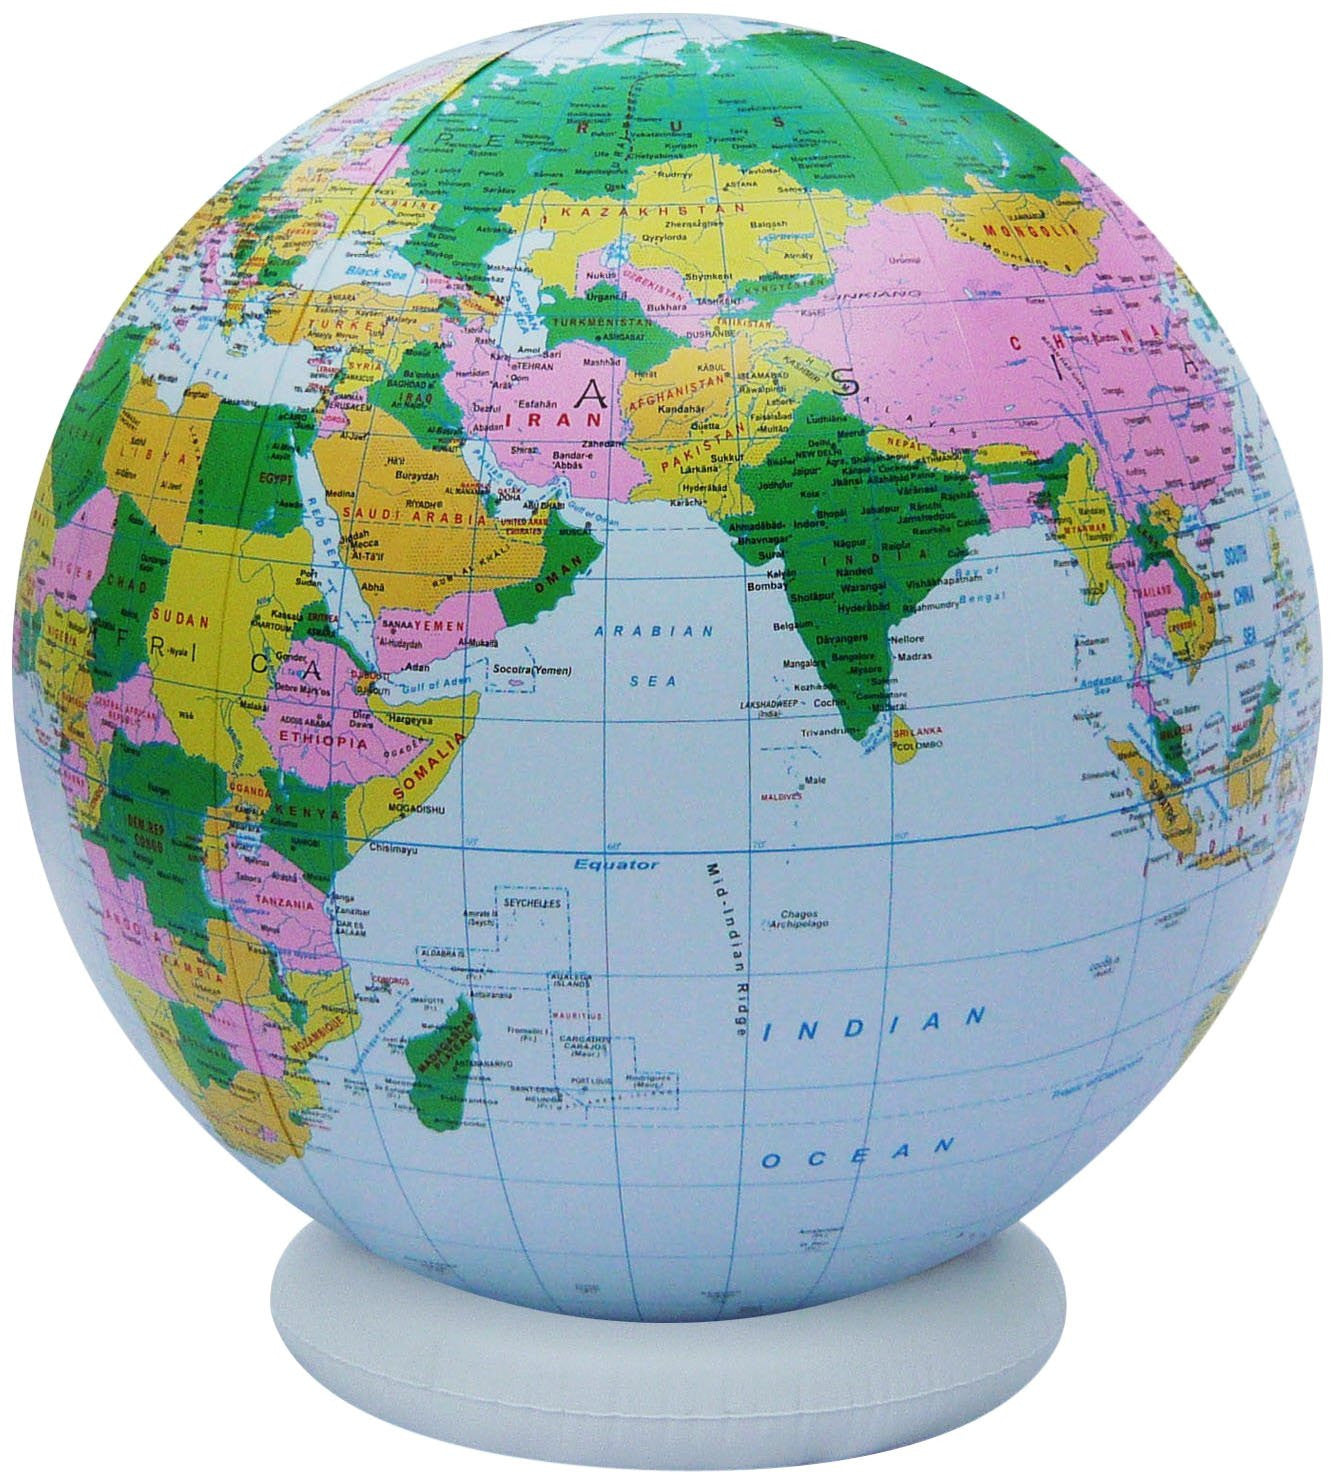 36 Inch Inflatable Political Globe with Base - Off The Wall Toys and Gifts